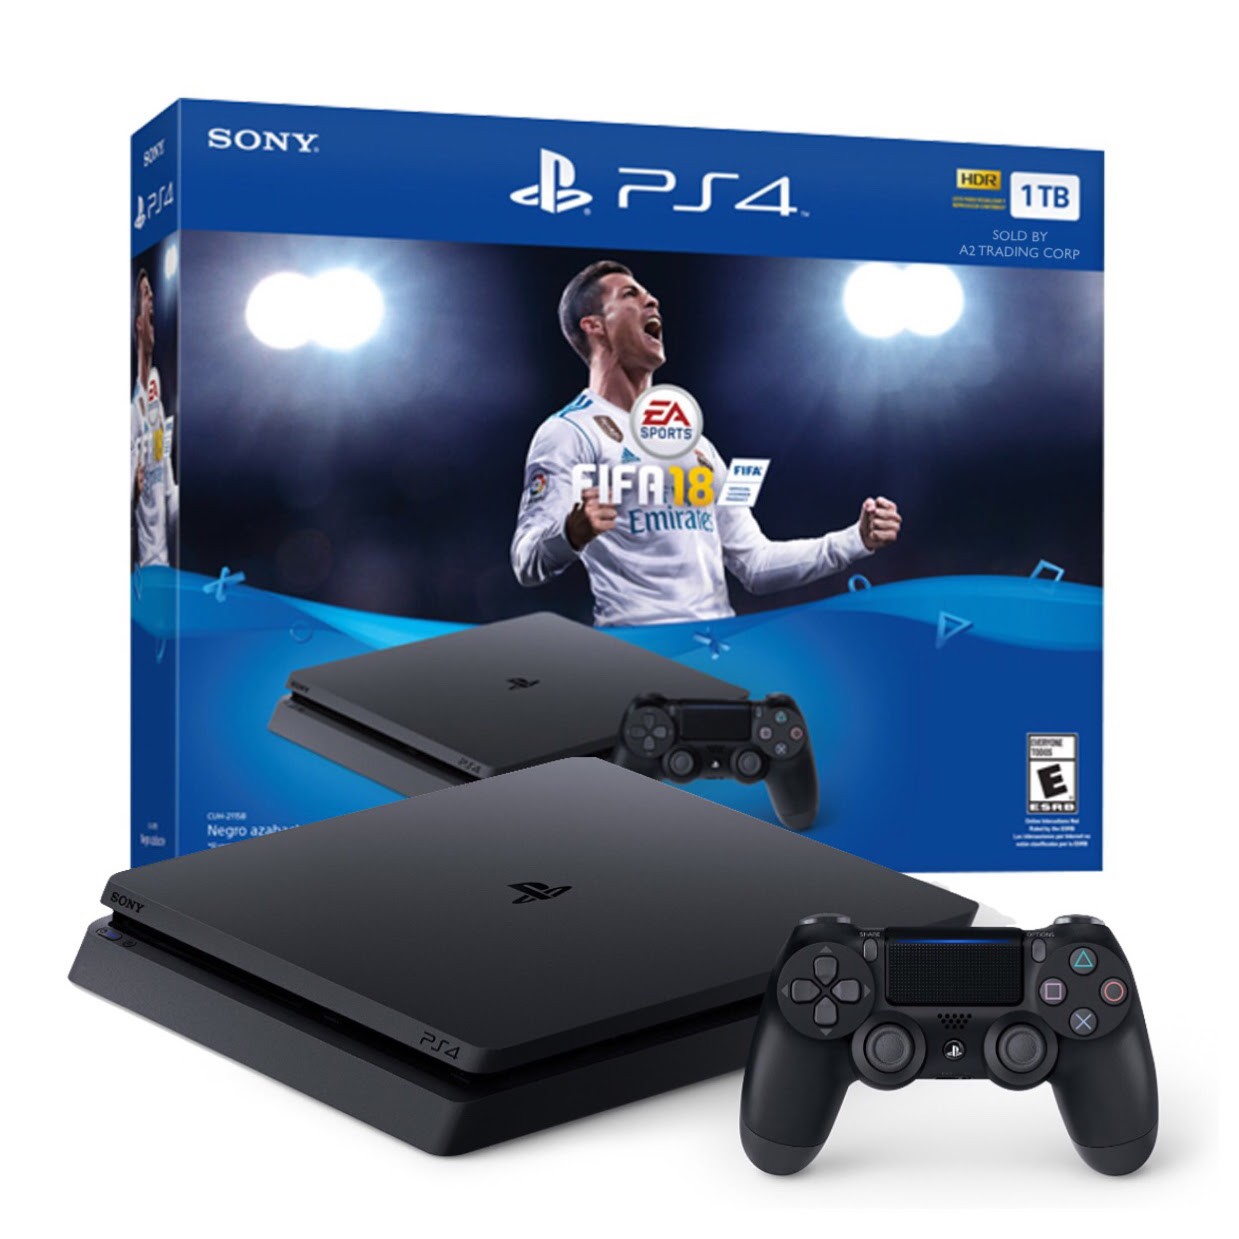 PS4 Slim 1TB FIFA18 Bundle